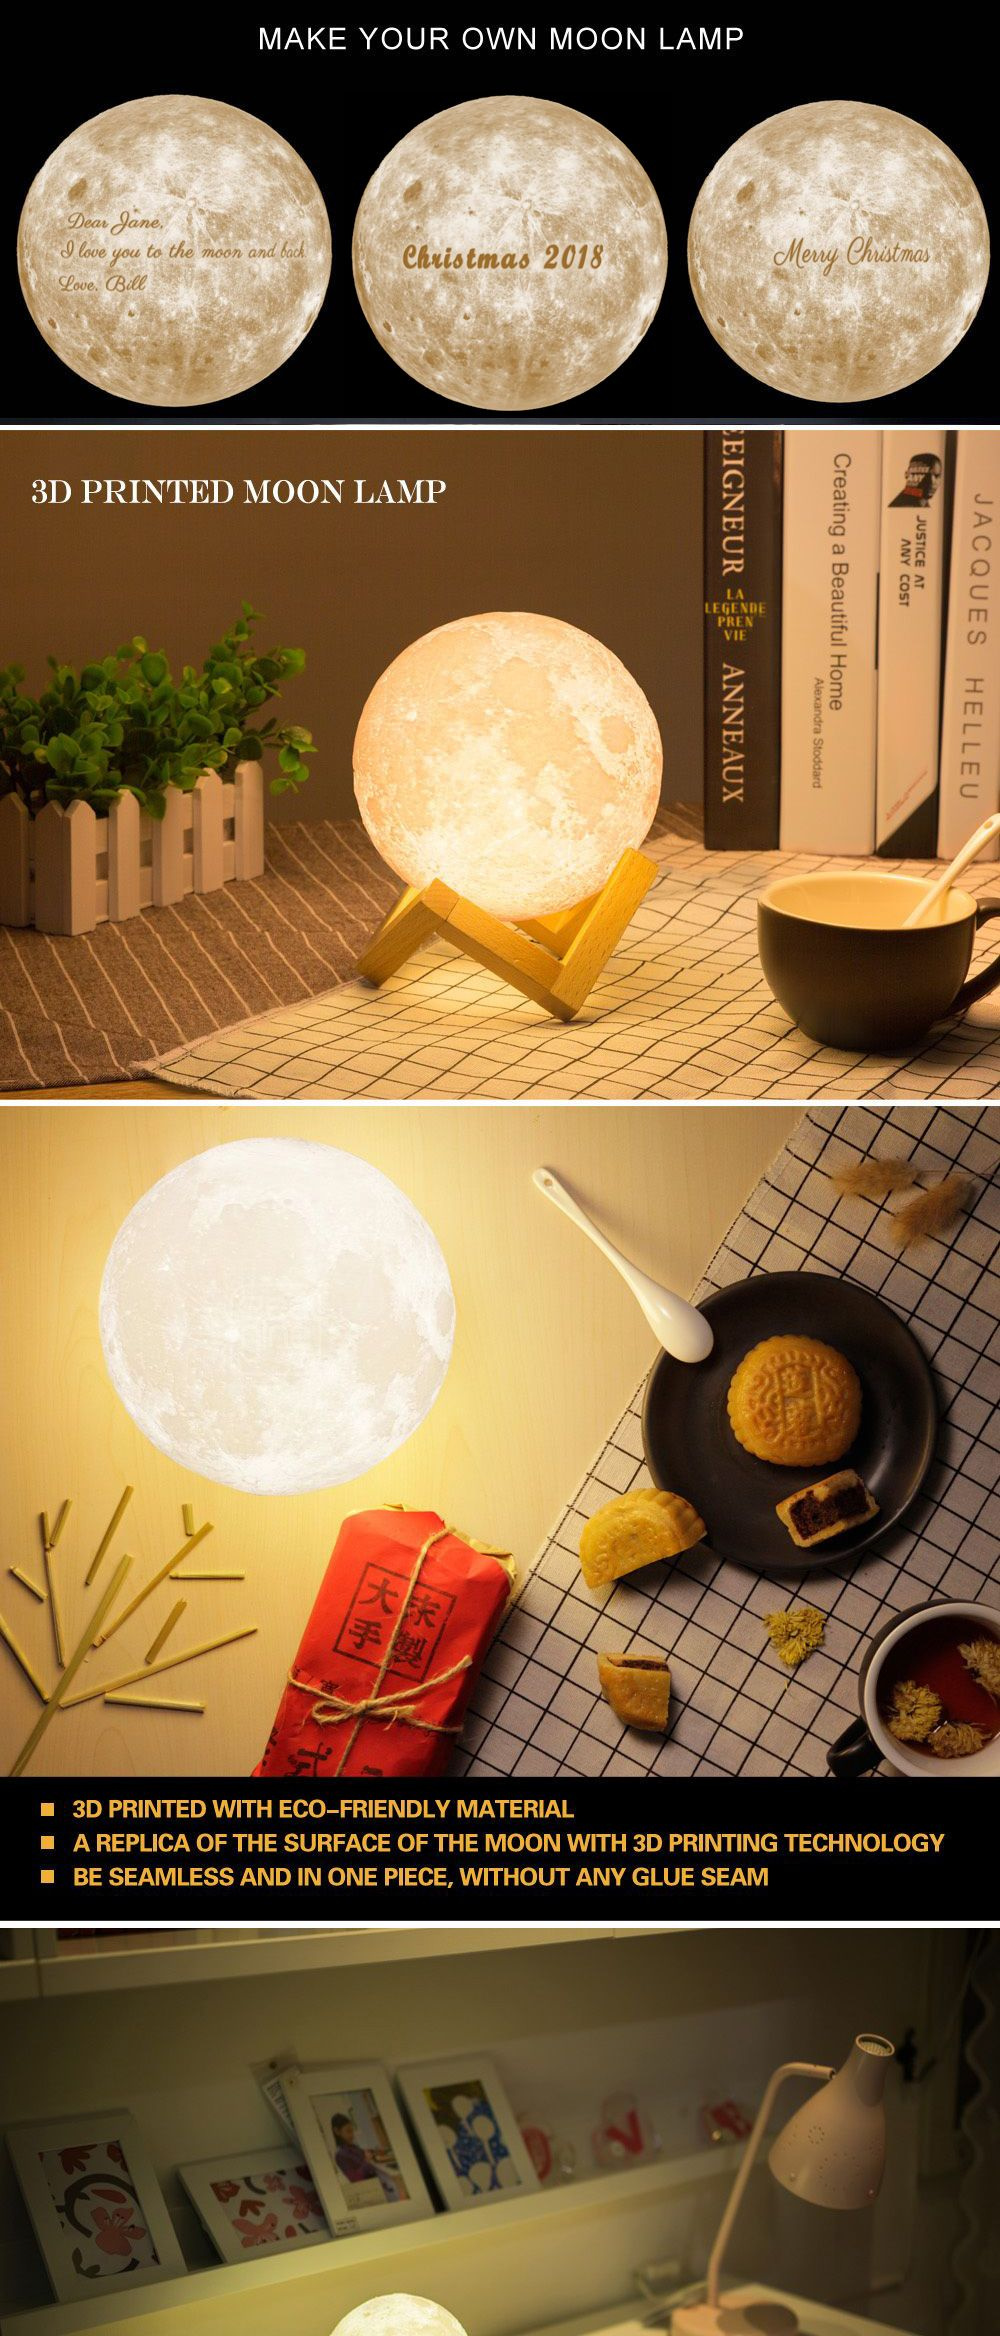 Personalized Moon Lamp Hi-Tech Lunar Magic, Personal Customization